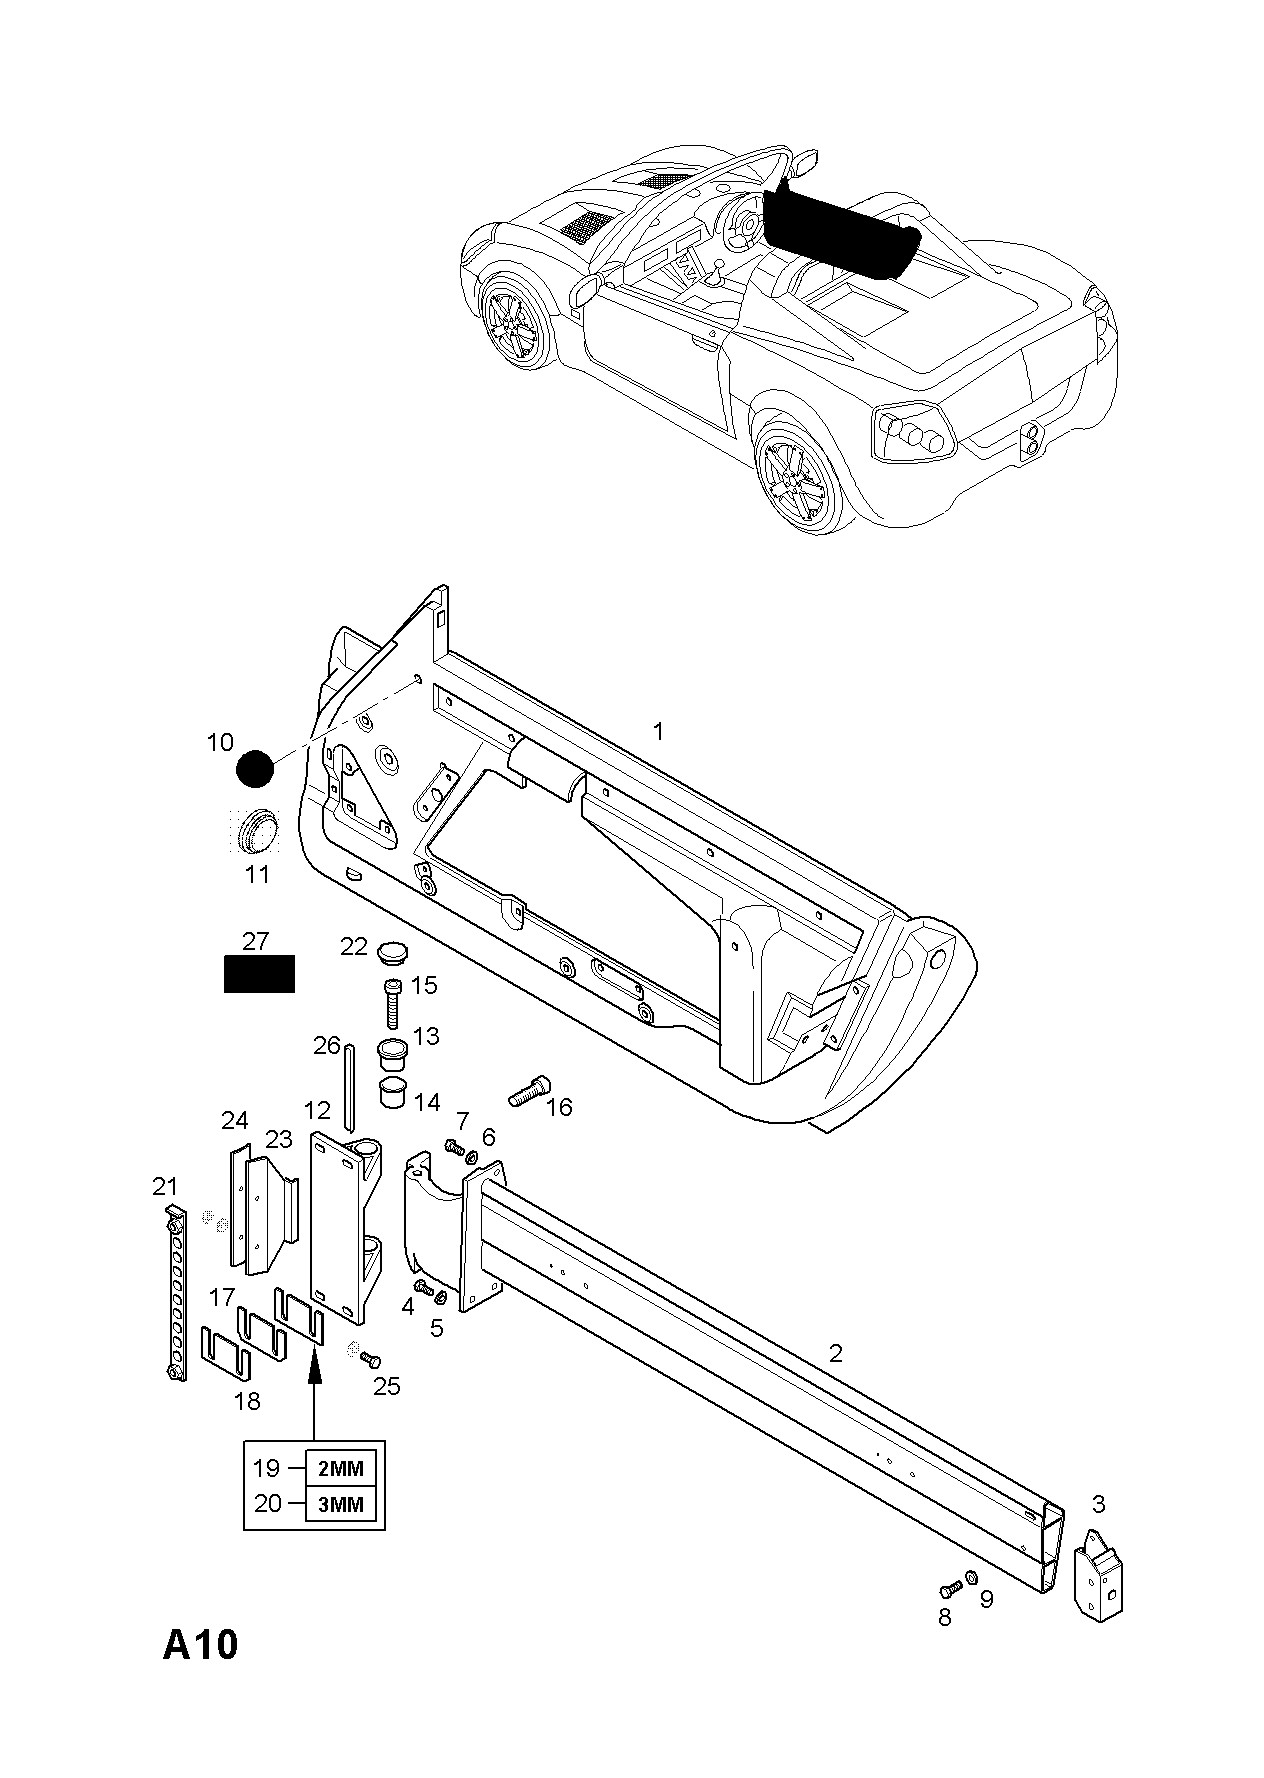 Parts Of A Car Body Diagram Opel Speedster 2001 2004 A Body Shell and Panels 5 Of Parts Of A Car Body Diagram